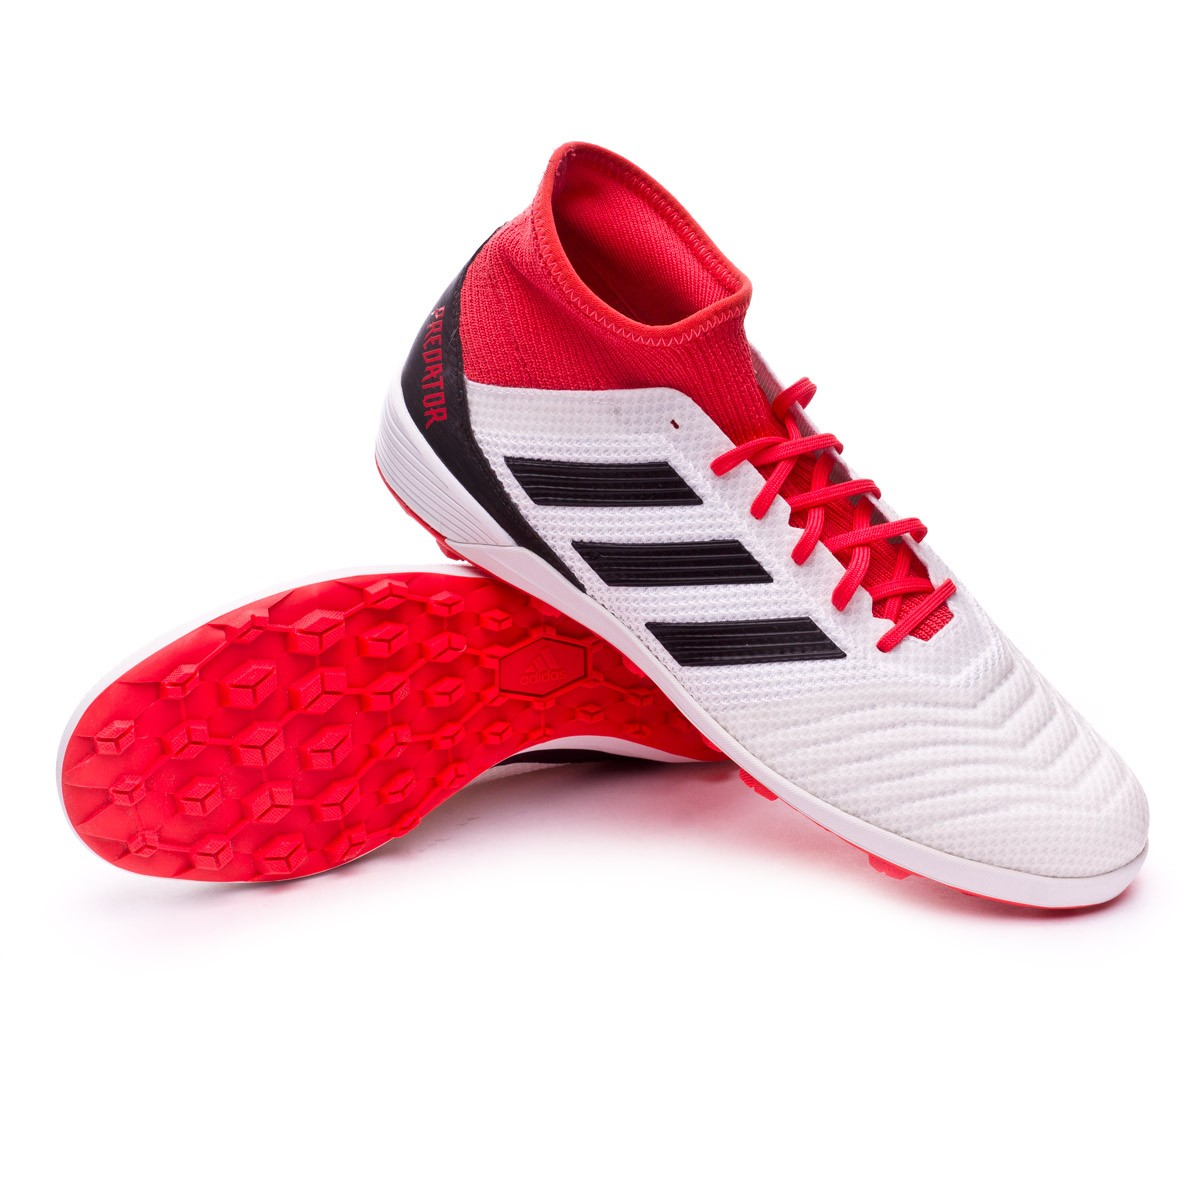 e8ba46cdcd200 Football Boot adidas Predator Tango 18.3 Turf White-Core black-Real ...